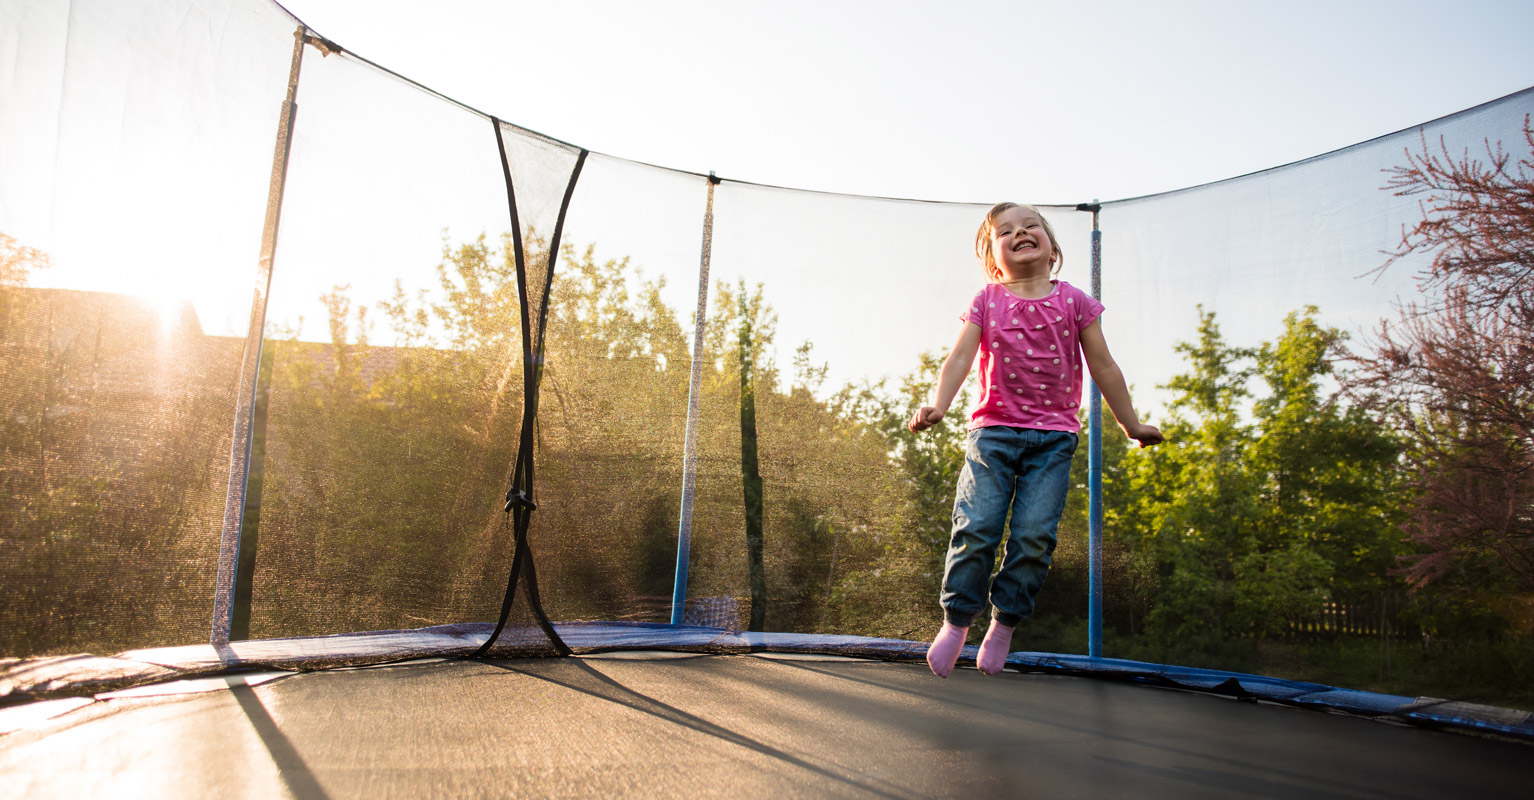 A child playing on a trampoline